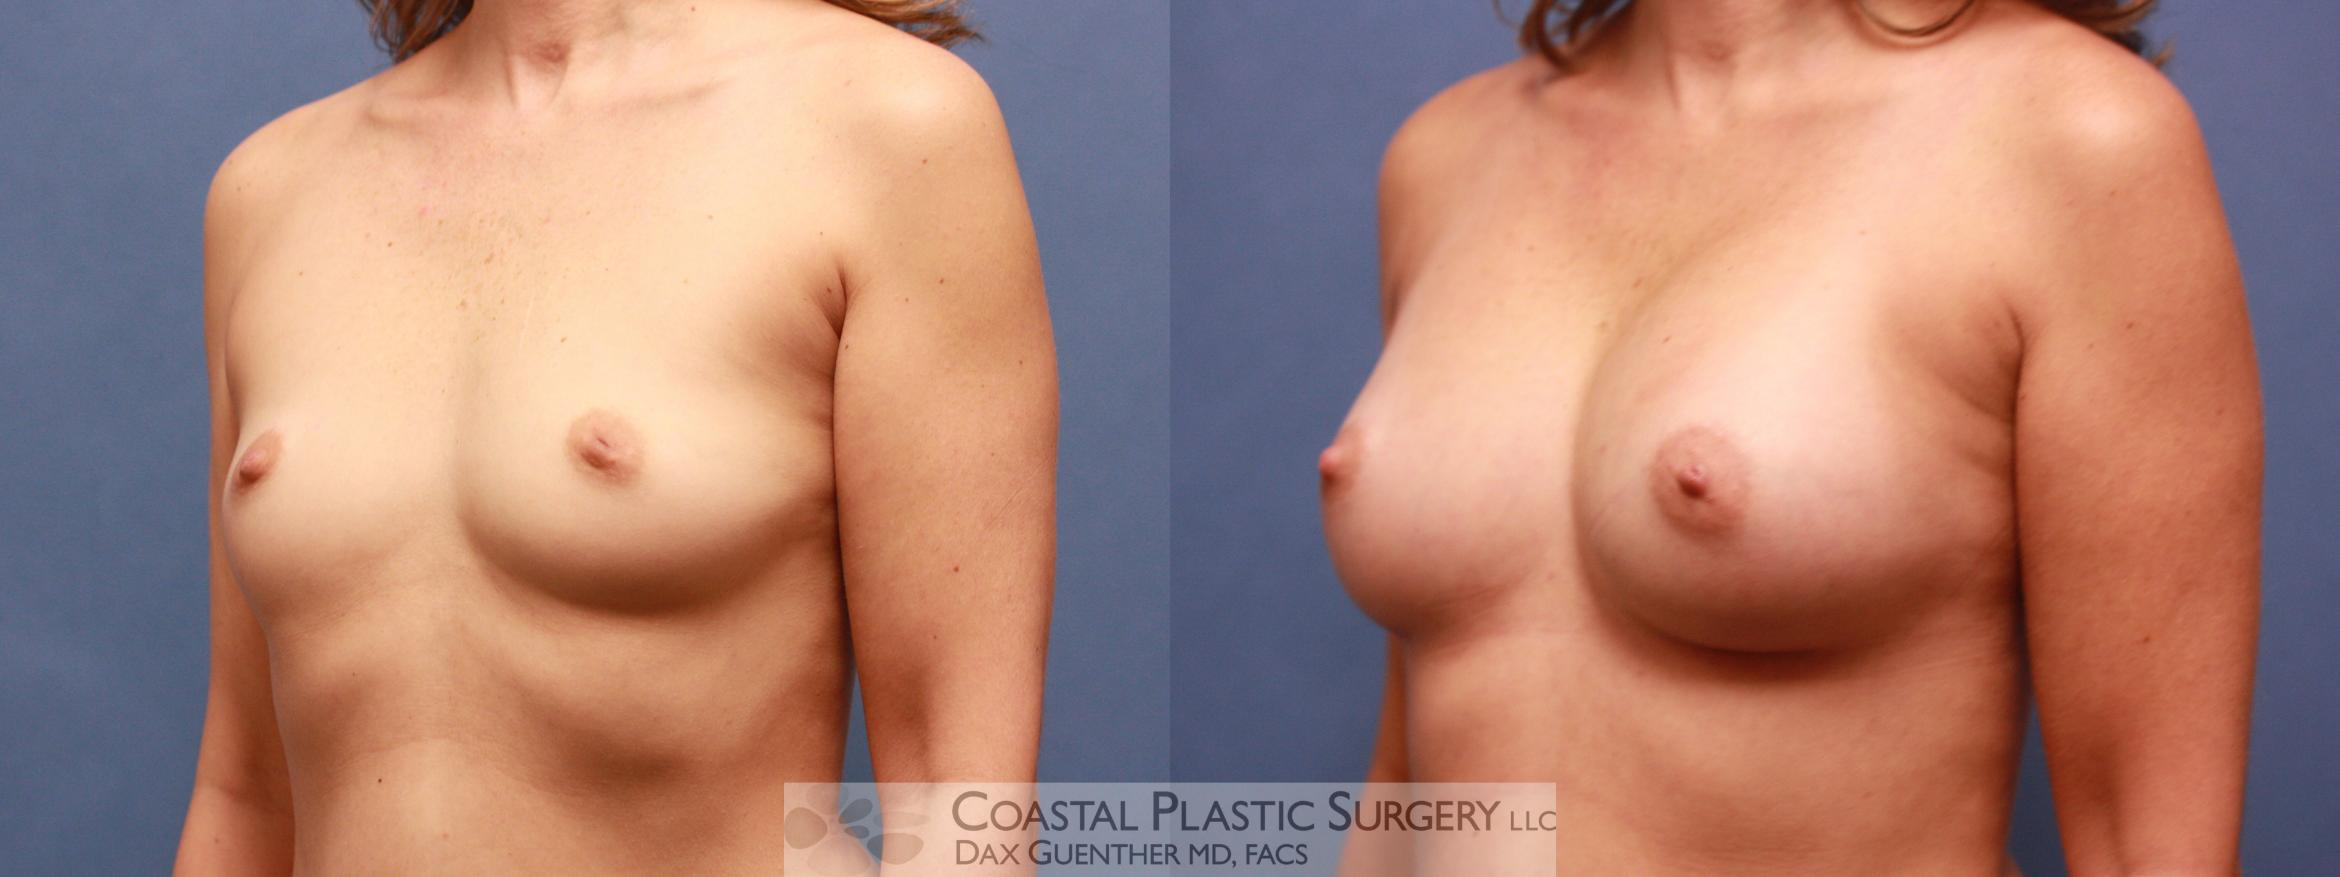 Breast Augmentation Before & After Photo | Hingham, Boston & Nantucket, MA | Dax Guenther, MD: Coastal Plastic Surgery